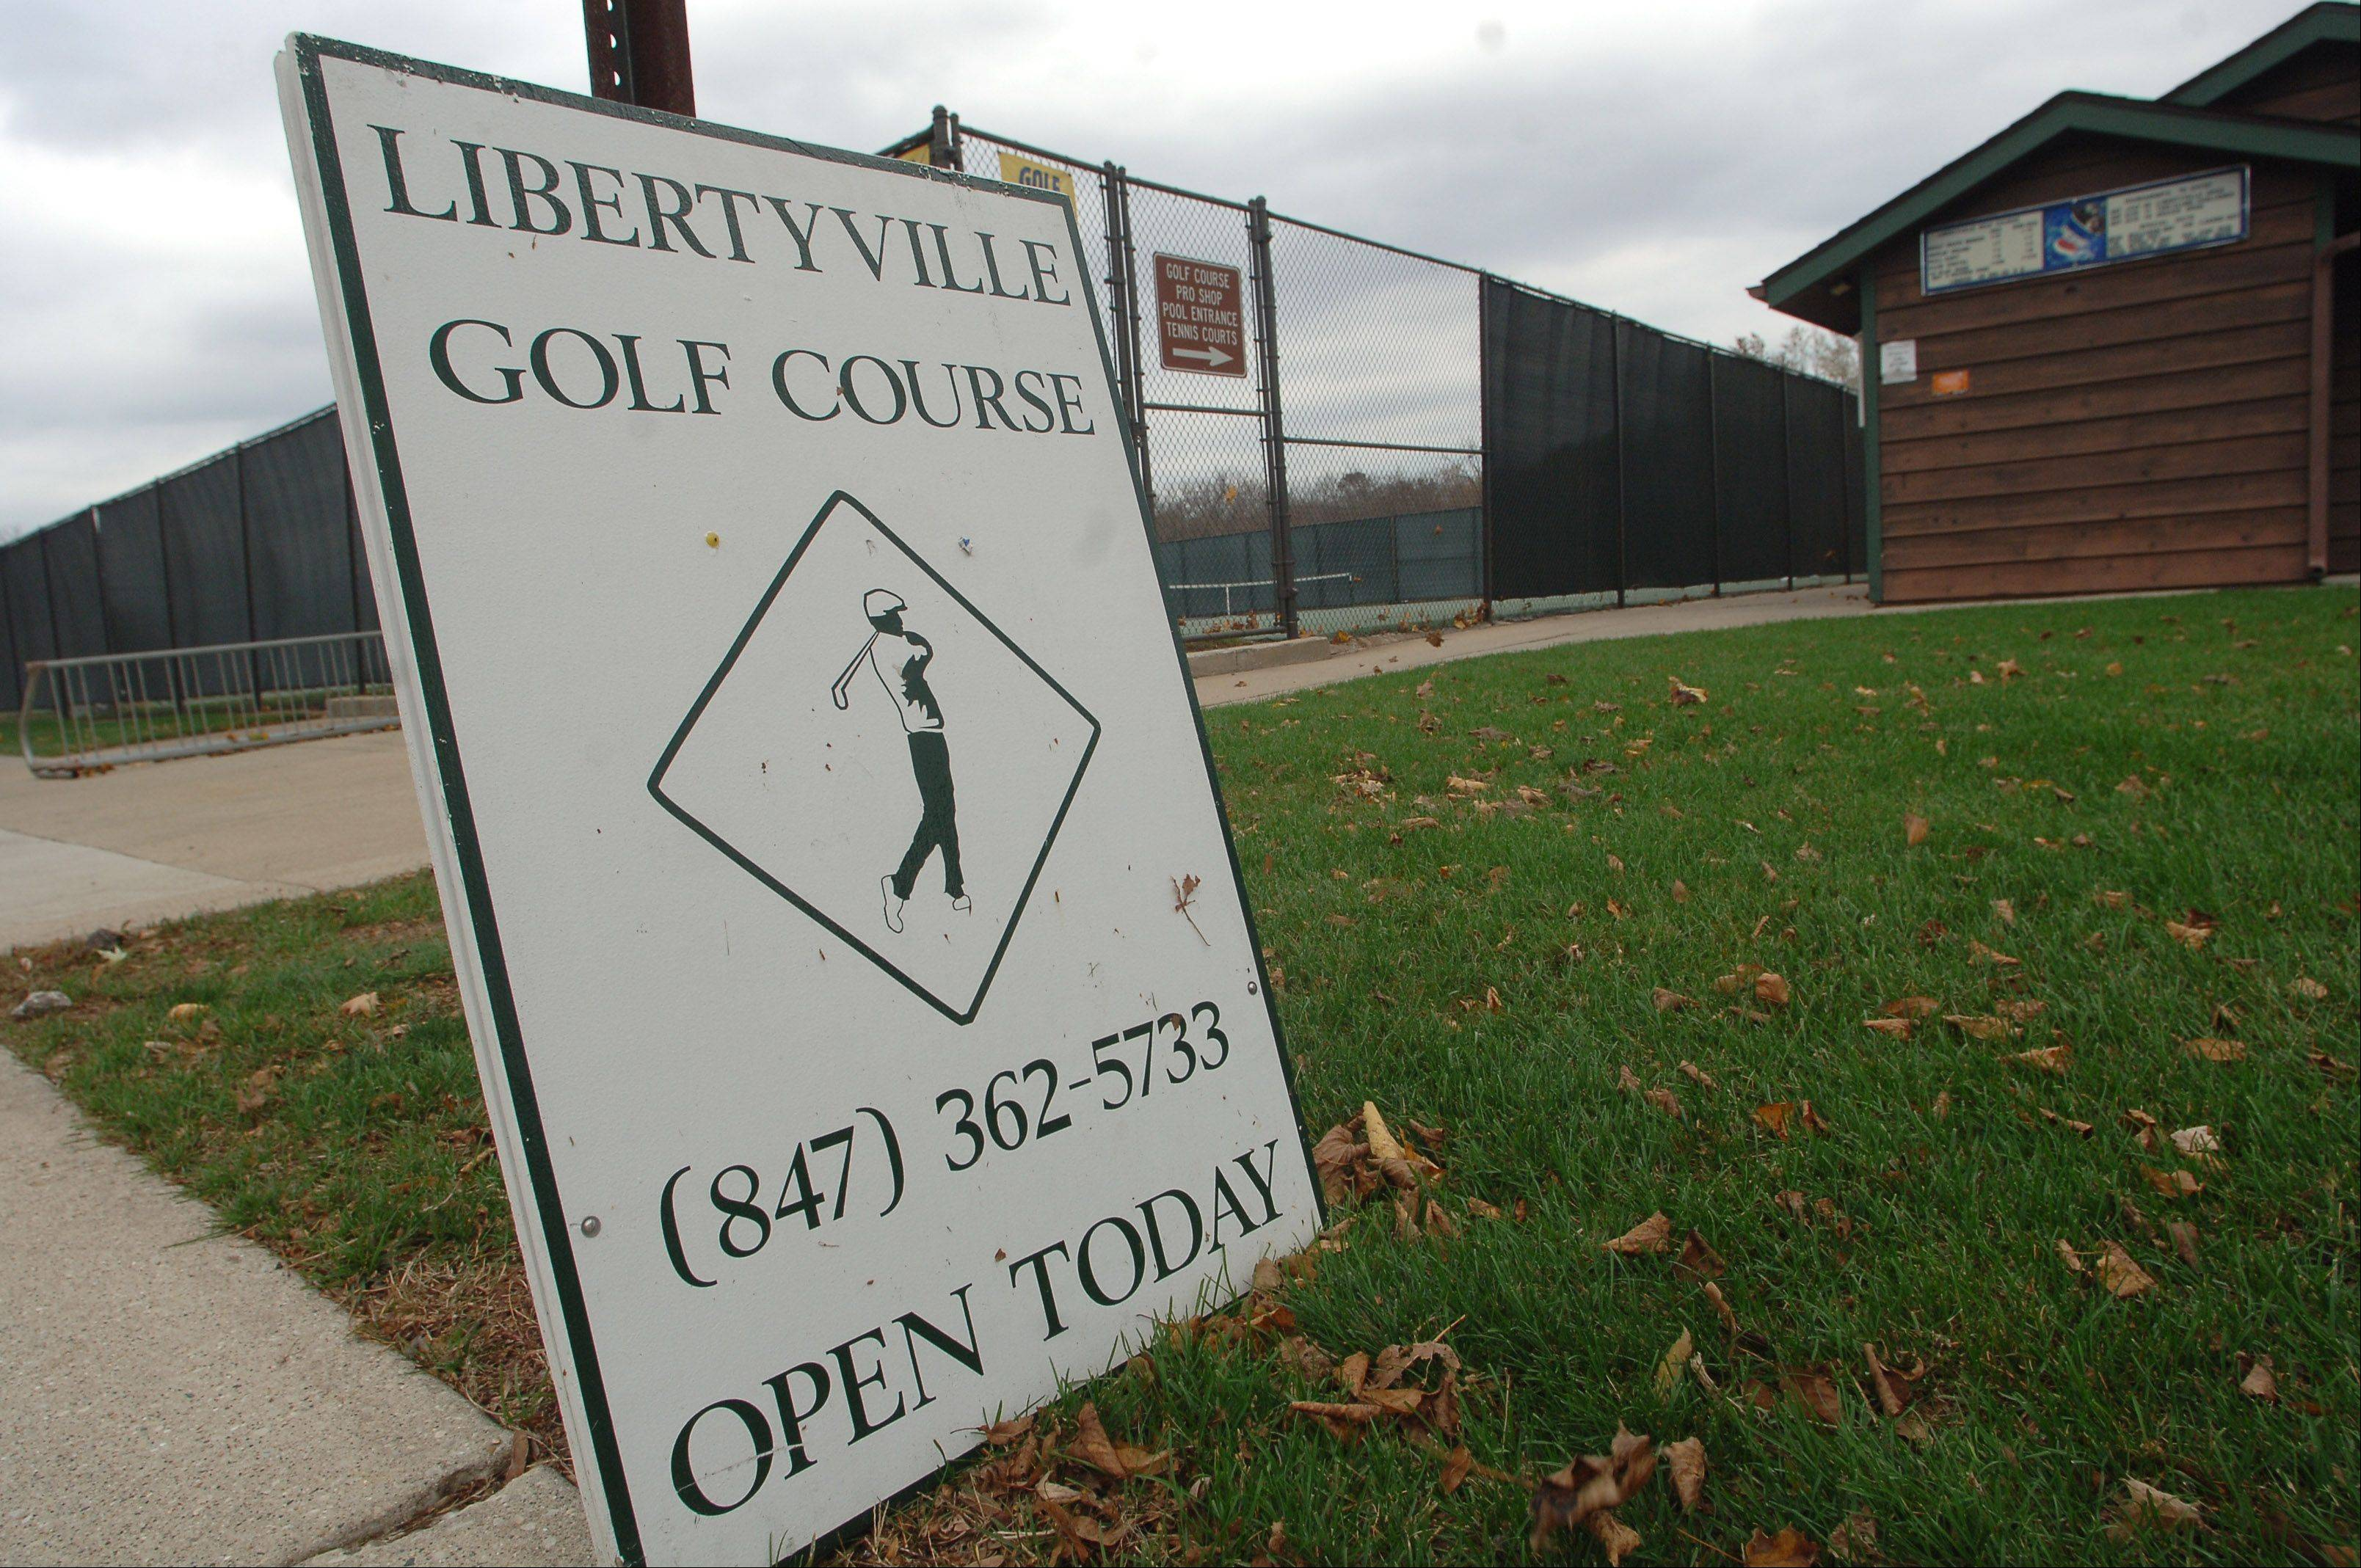 New operator for Libertyville golf course will replace greens and tees with a synthetic surface